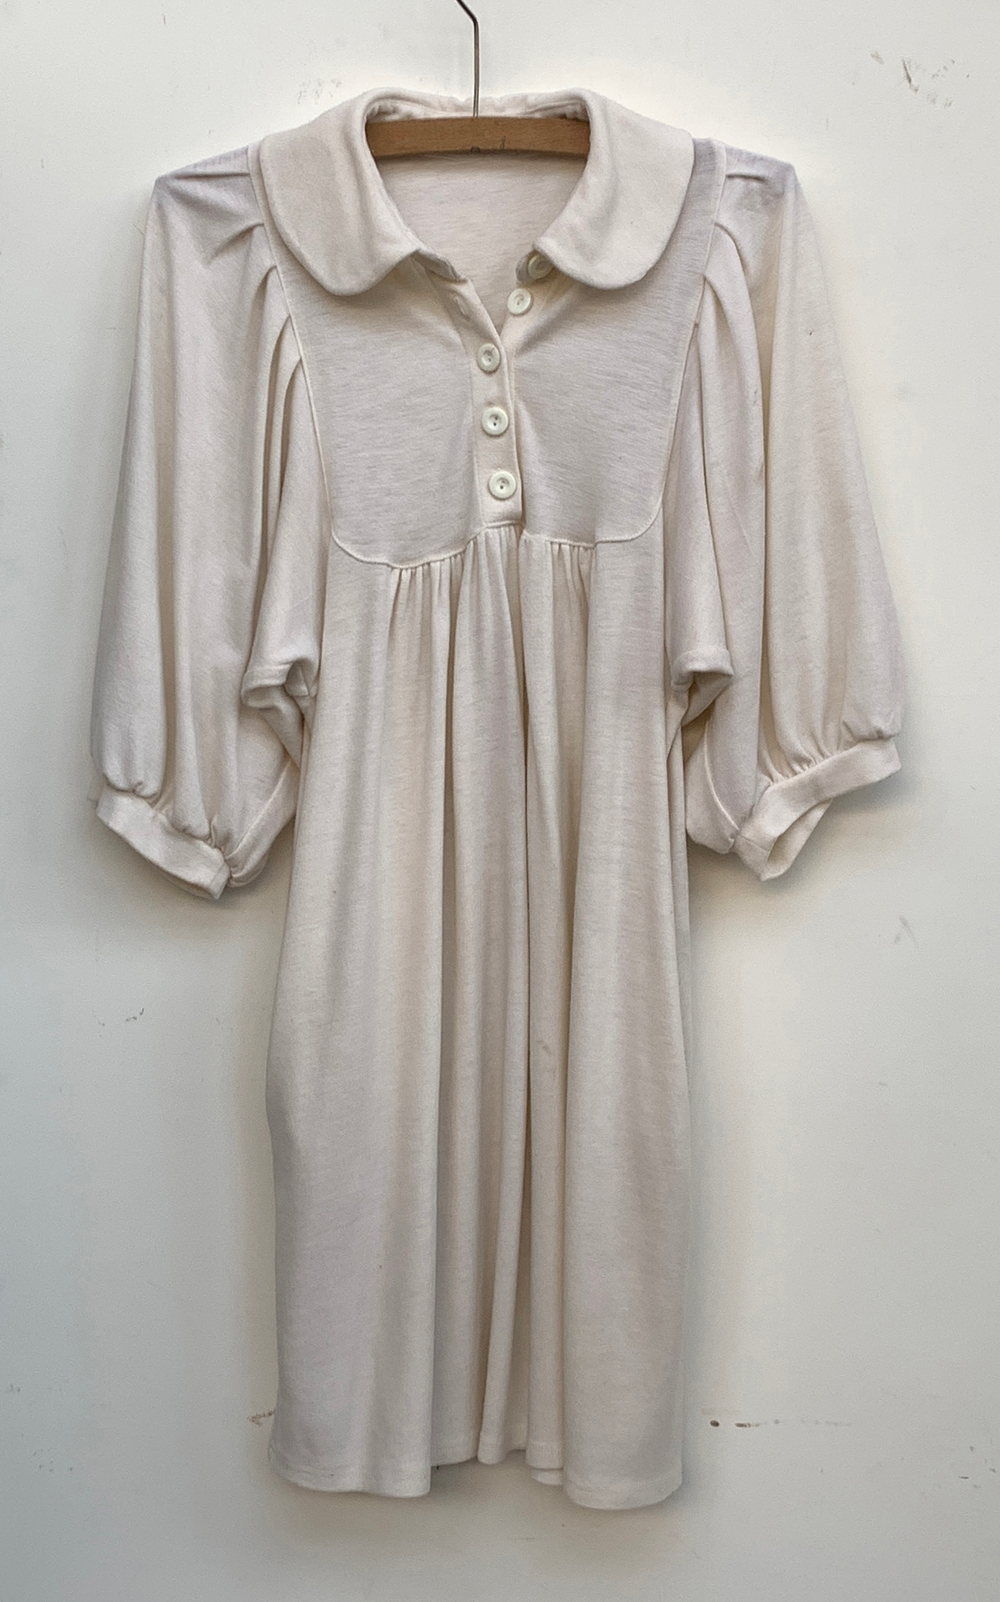 A See by Chloe cotton dress, size 8-10